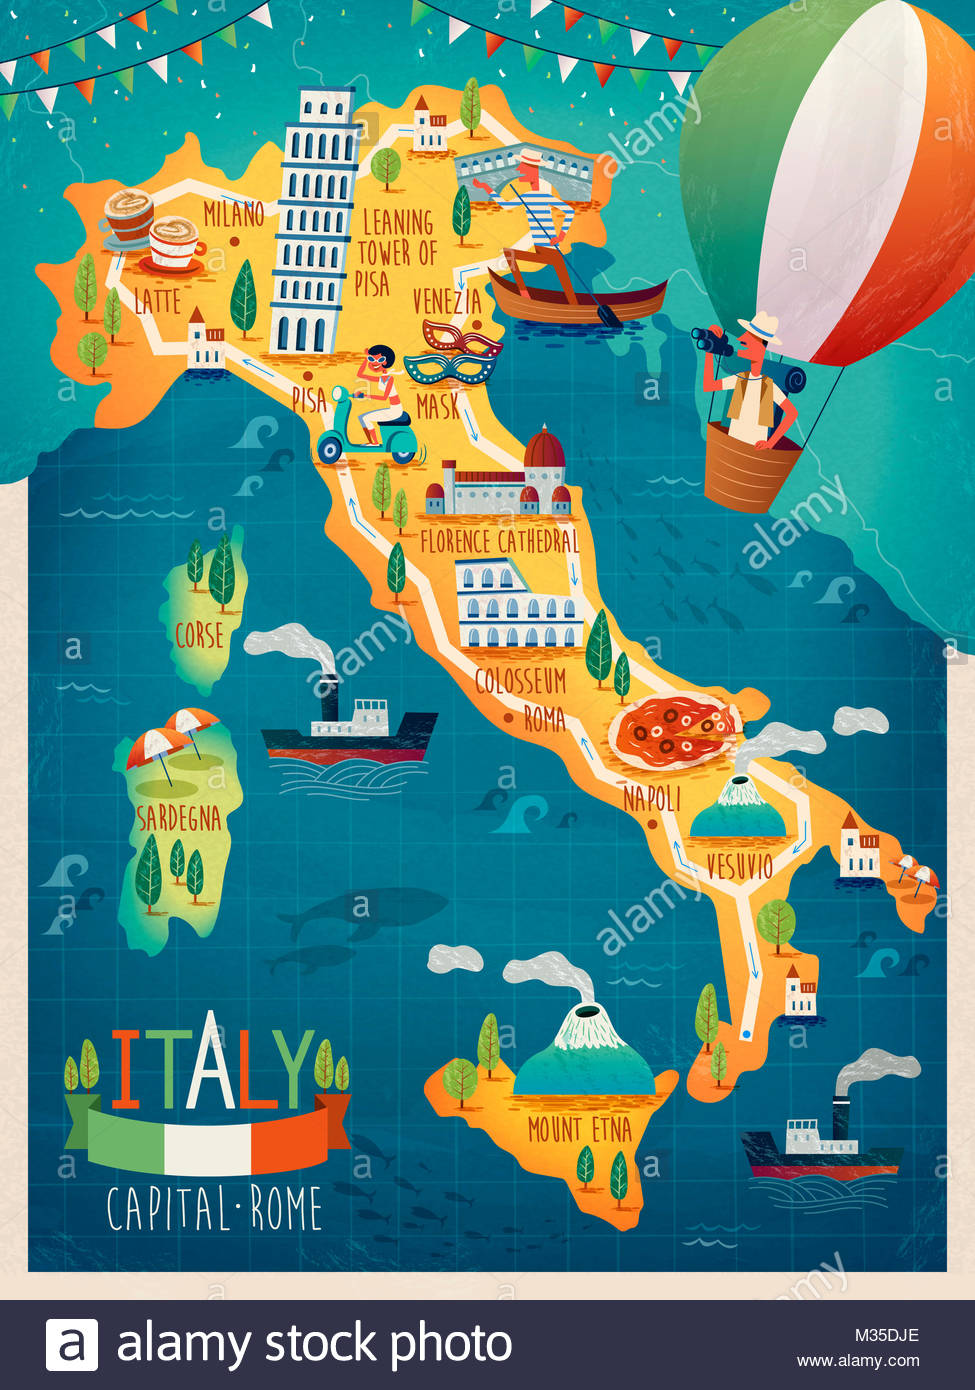 Colorful italy travel map with attraction symbols italian words colorful italy travel map with attraction symbols italian words for venice mount vesuvius milan naples sardinia rome and french words for corsic gumiabroncs Image collections